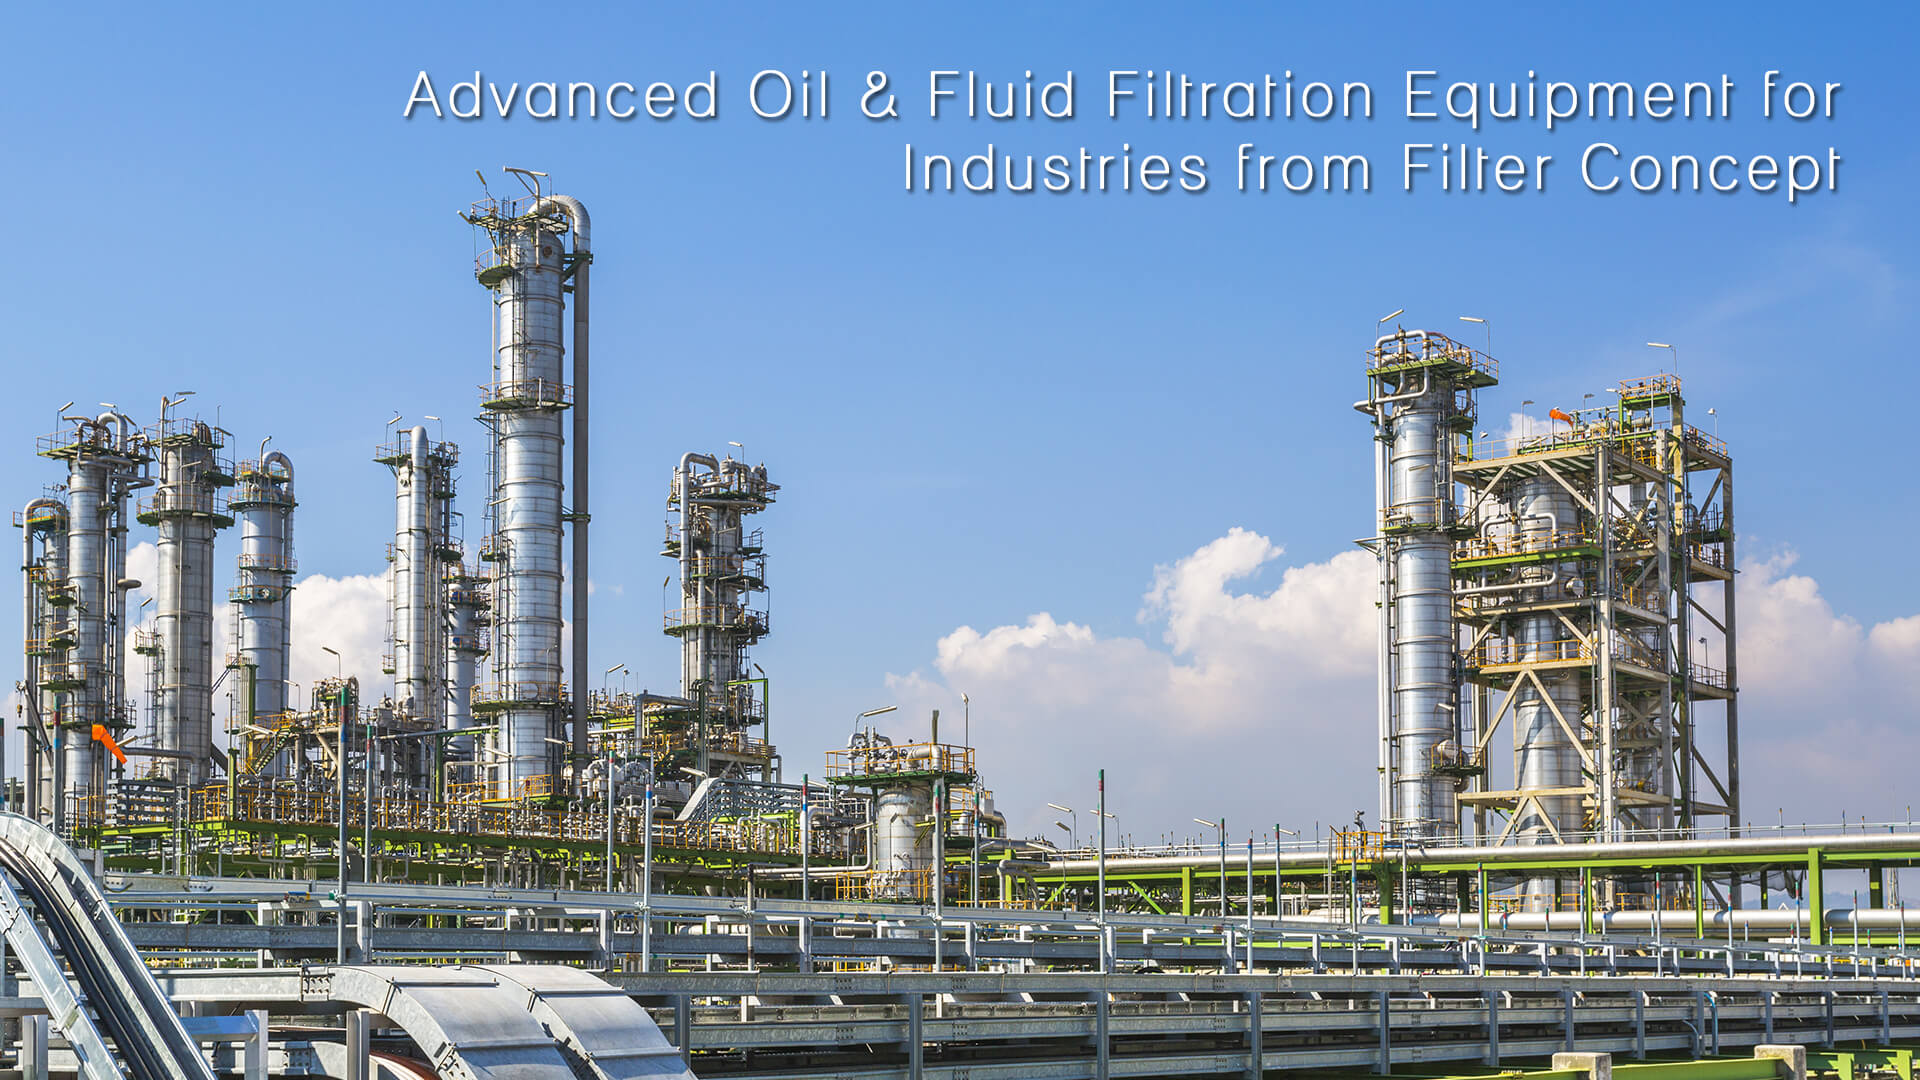 Advanced Oil & Fluid Filtration Equipment for Industries from Filter Concept